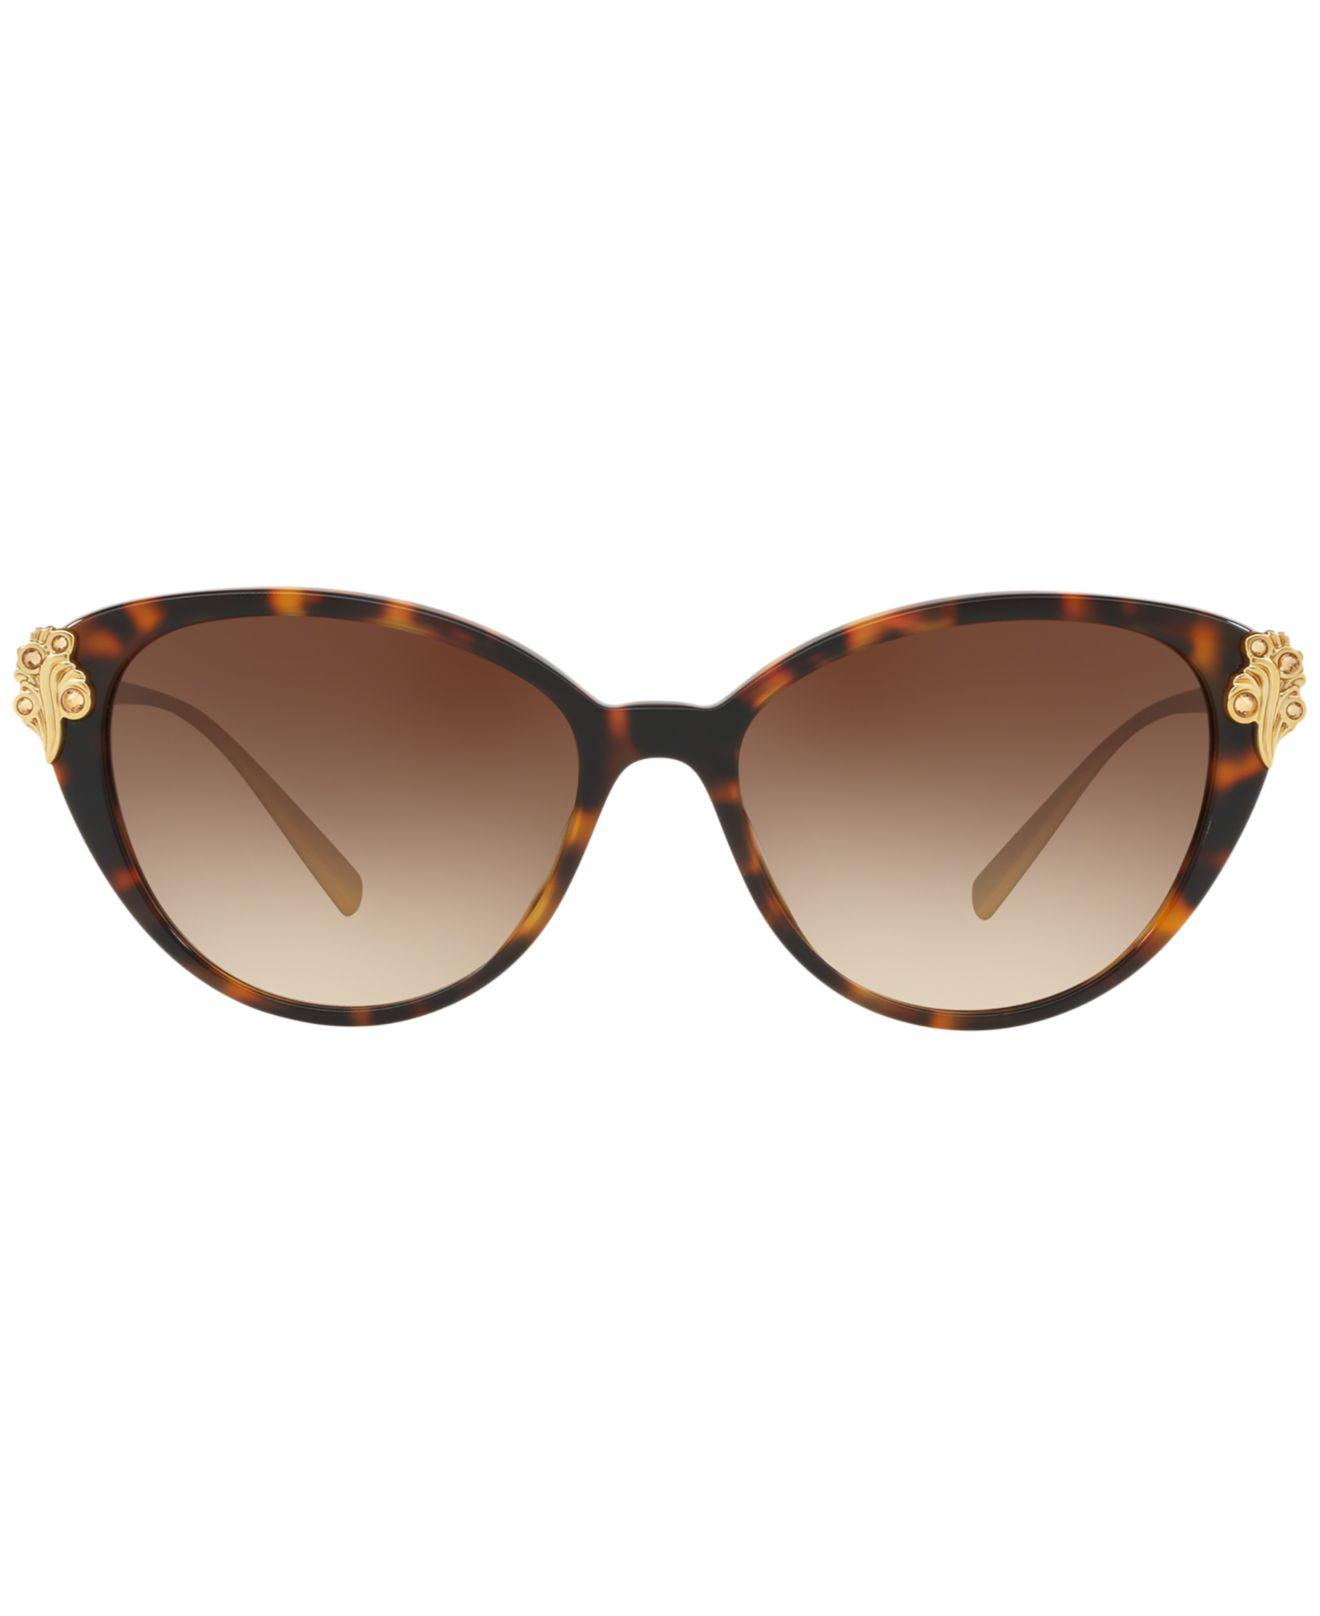 5267//13 Sunglasses Versace BAROCCOMANIA VE 4351B Havana//Brown Shaded